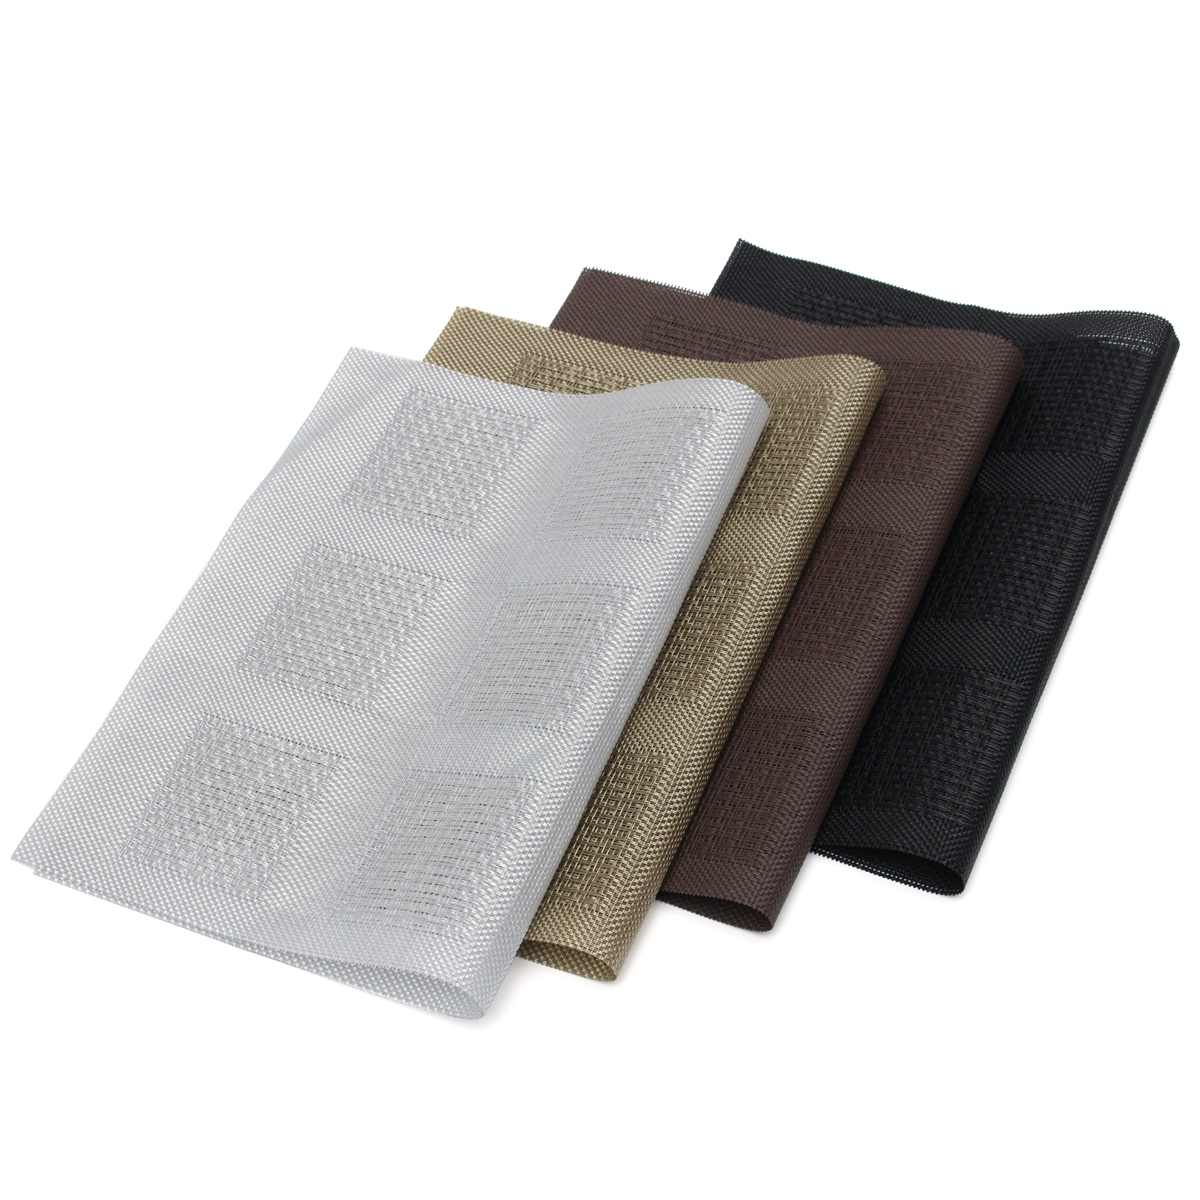 Heat Resistant Dining Table Mat Pad Placemat Pvc